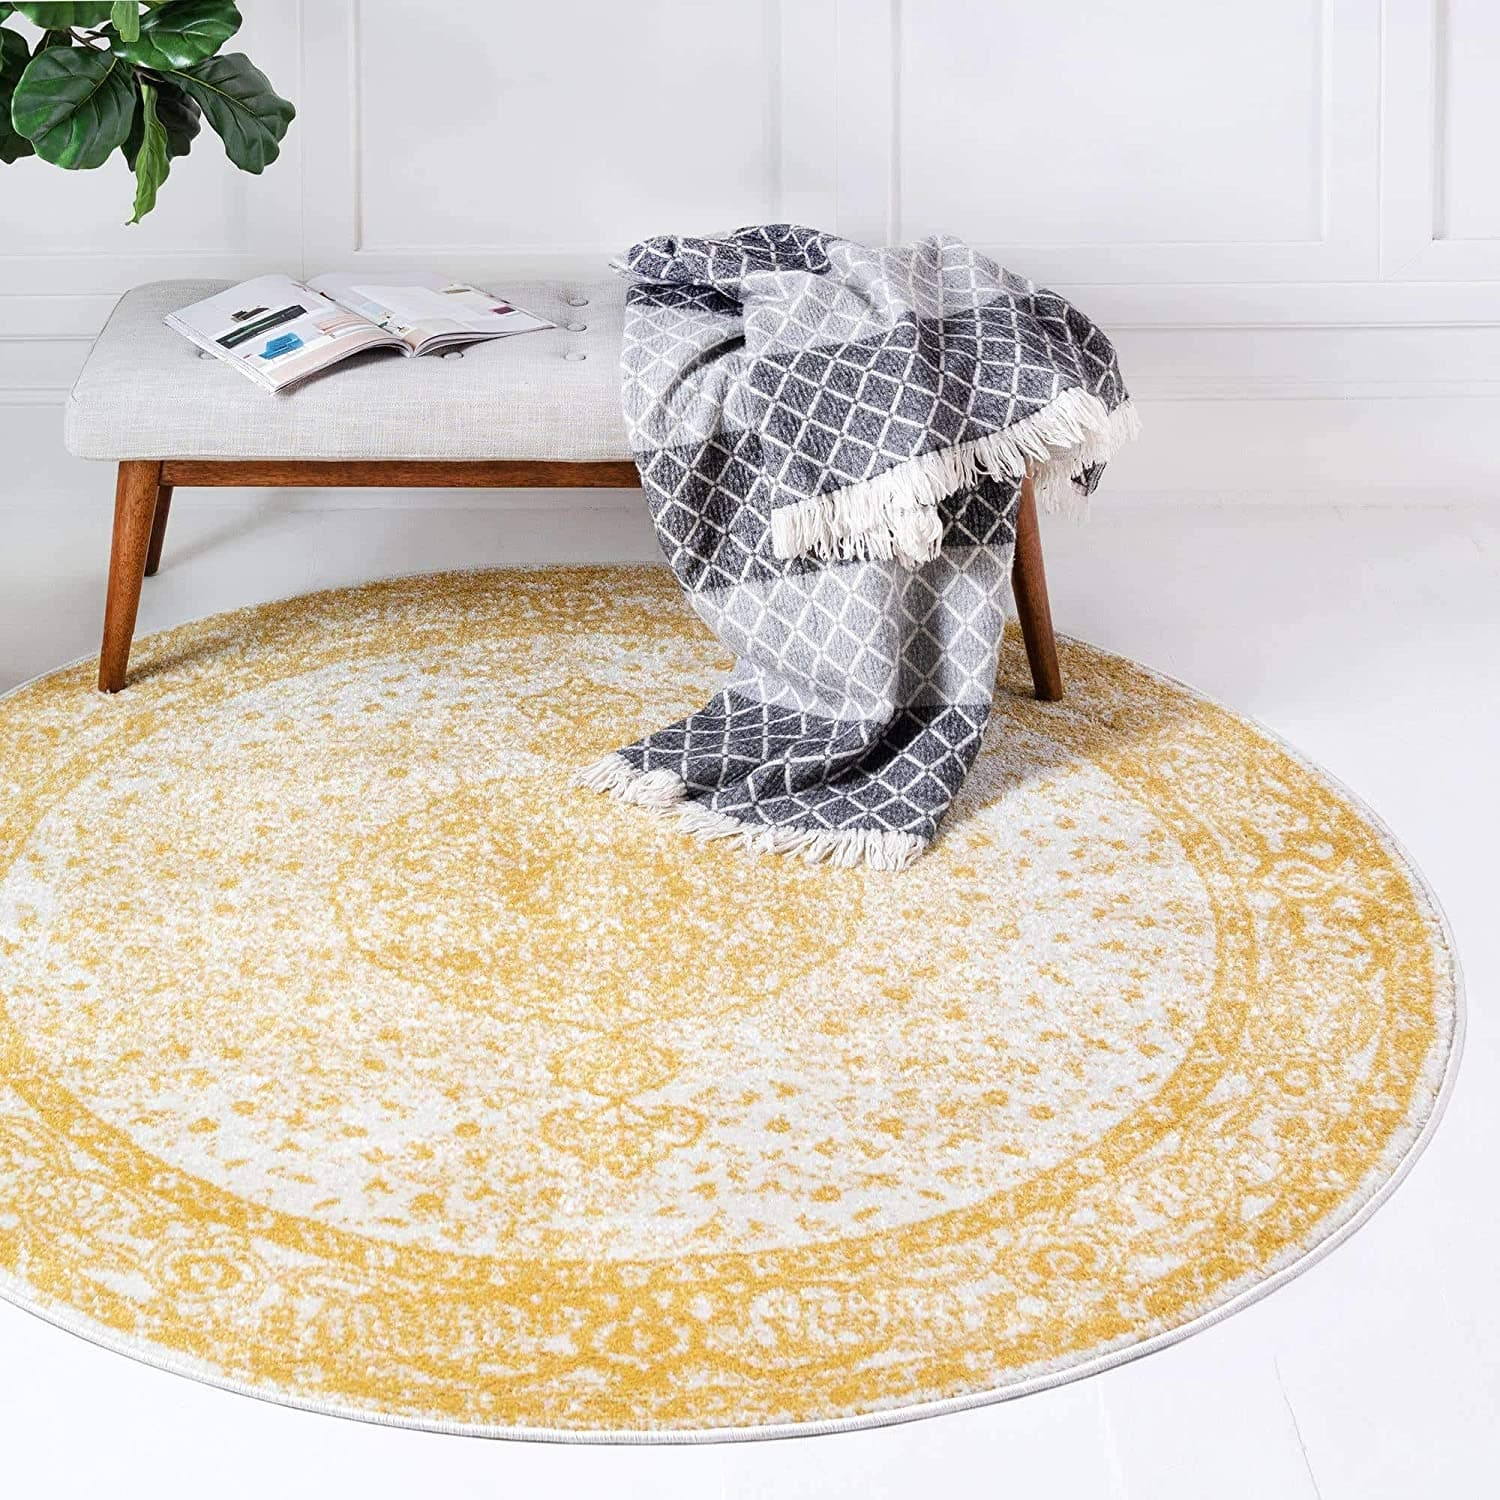 5' Round Unique Loom Bromley Collection Yellow Area Rug $28 + Free Shipping